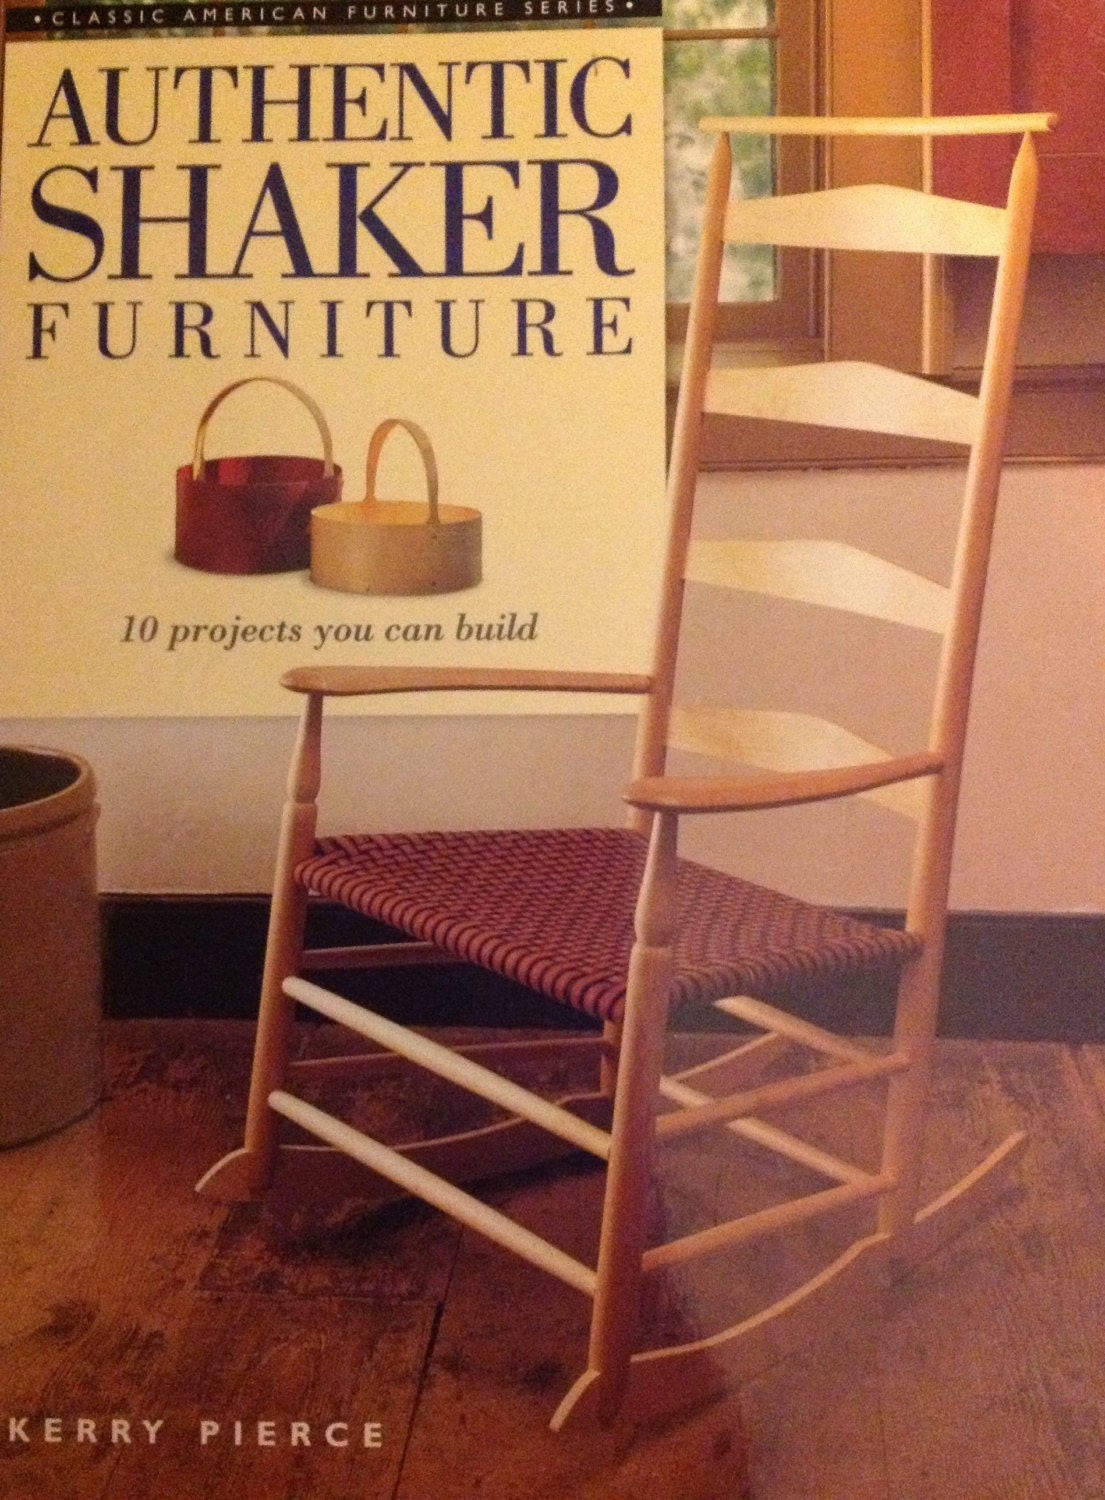 authentic shaker furniture 10 projects you can build by kerry pierce